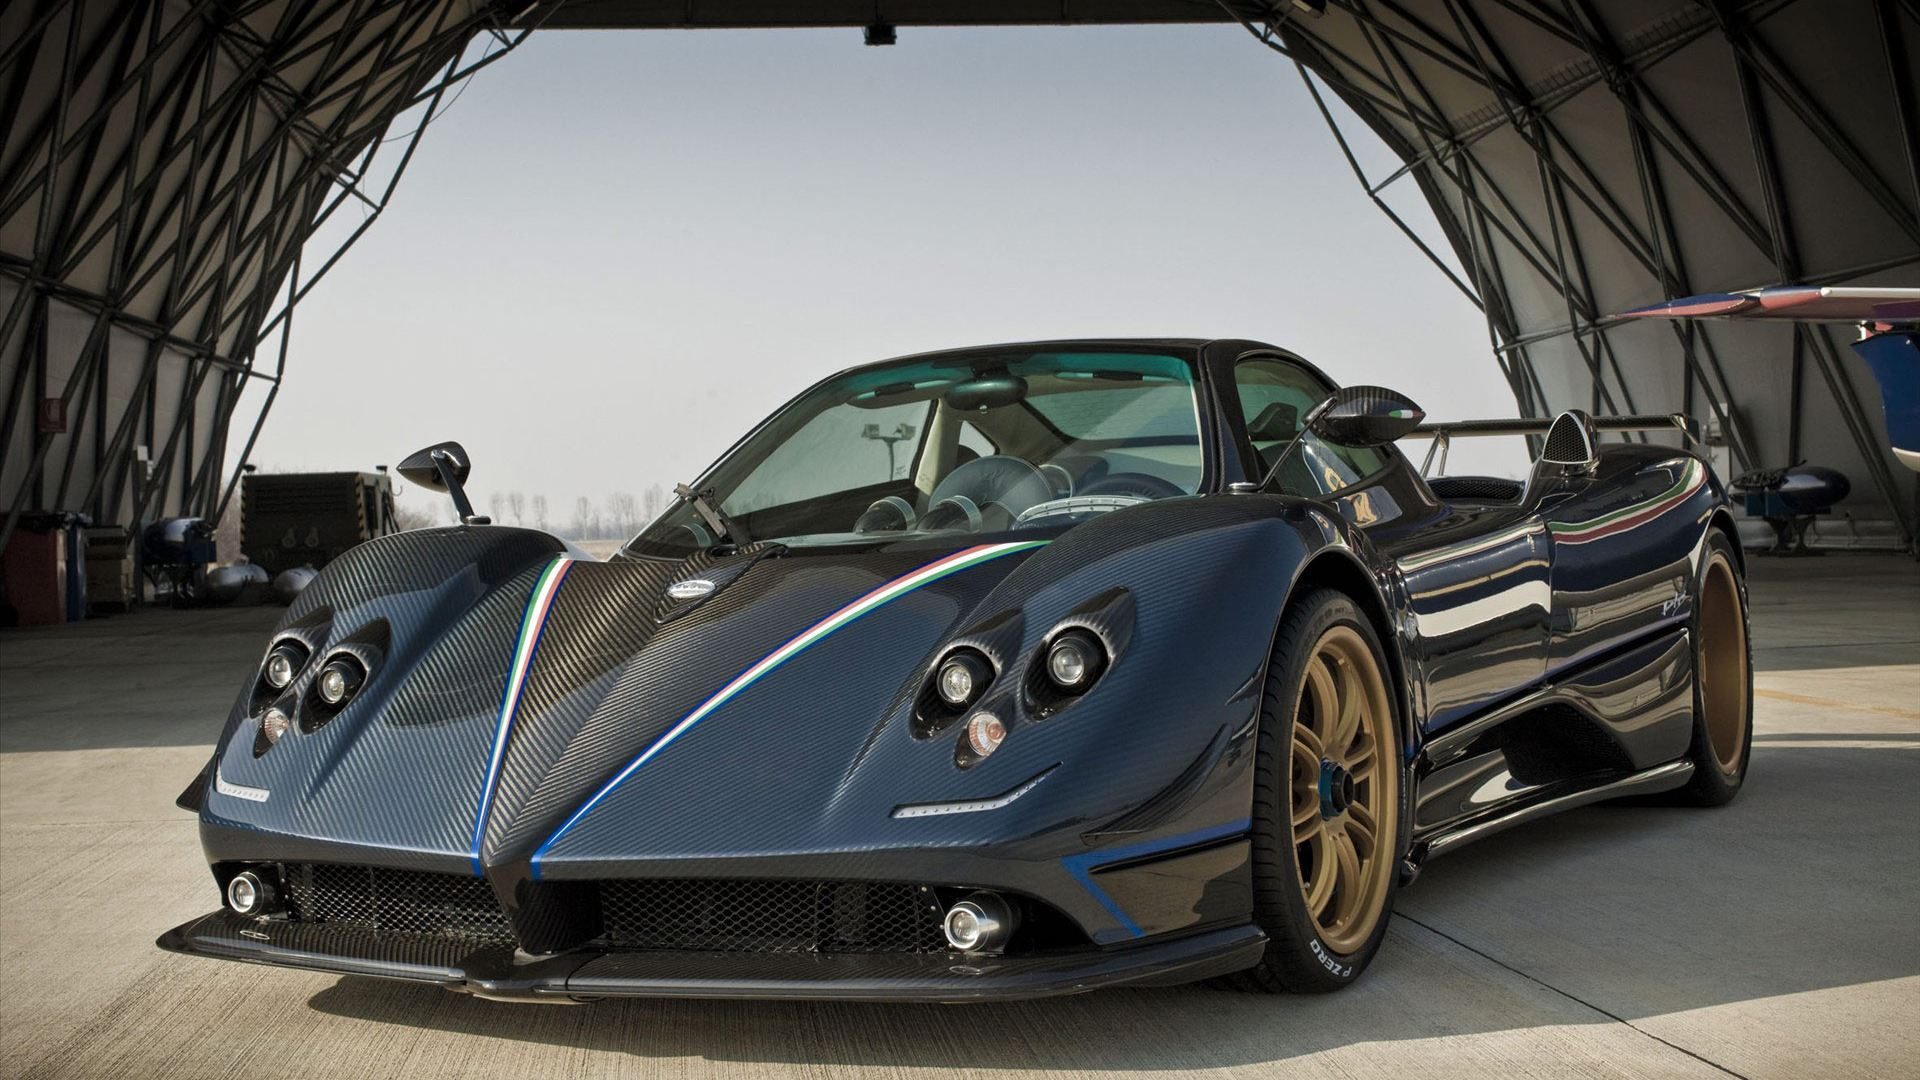 pagani zonda wallpaper background 48732